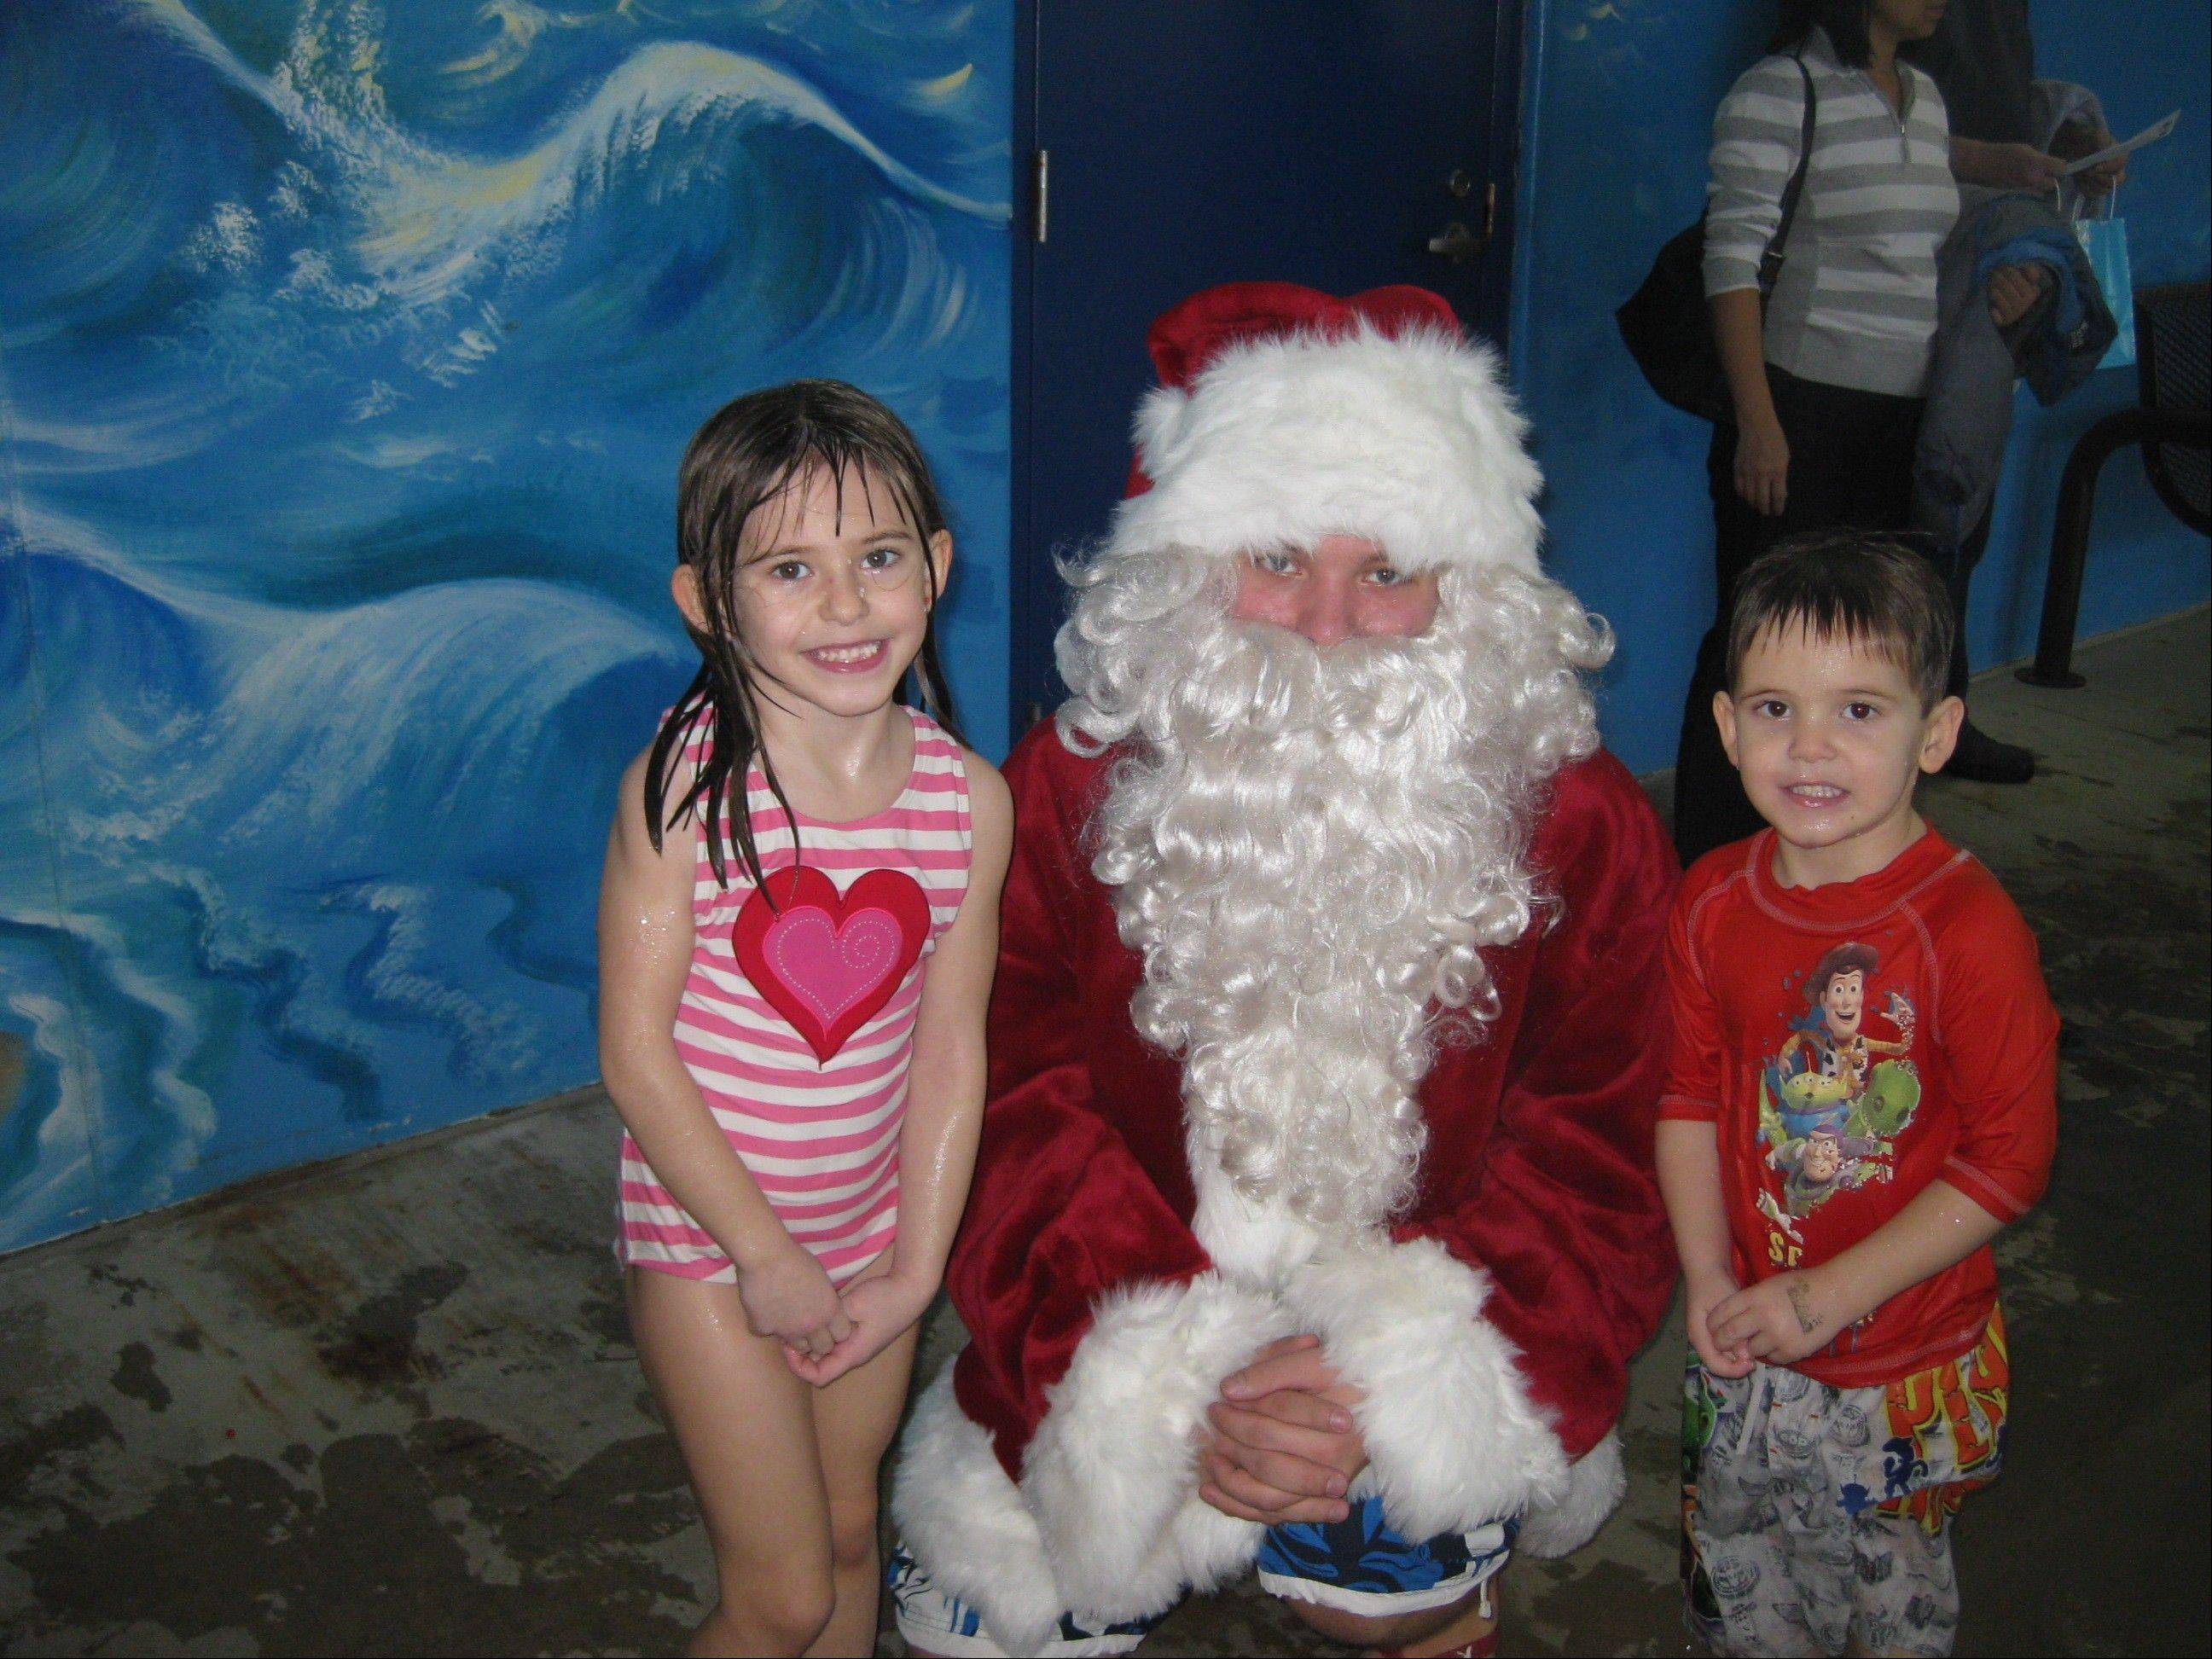 Santa Claus will be in the pool and on the pool's deck to meet with youngsters at the Swim With Santa event at the Elk Grove Pavilion Aquatic Center in Elk Grove Village.